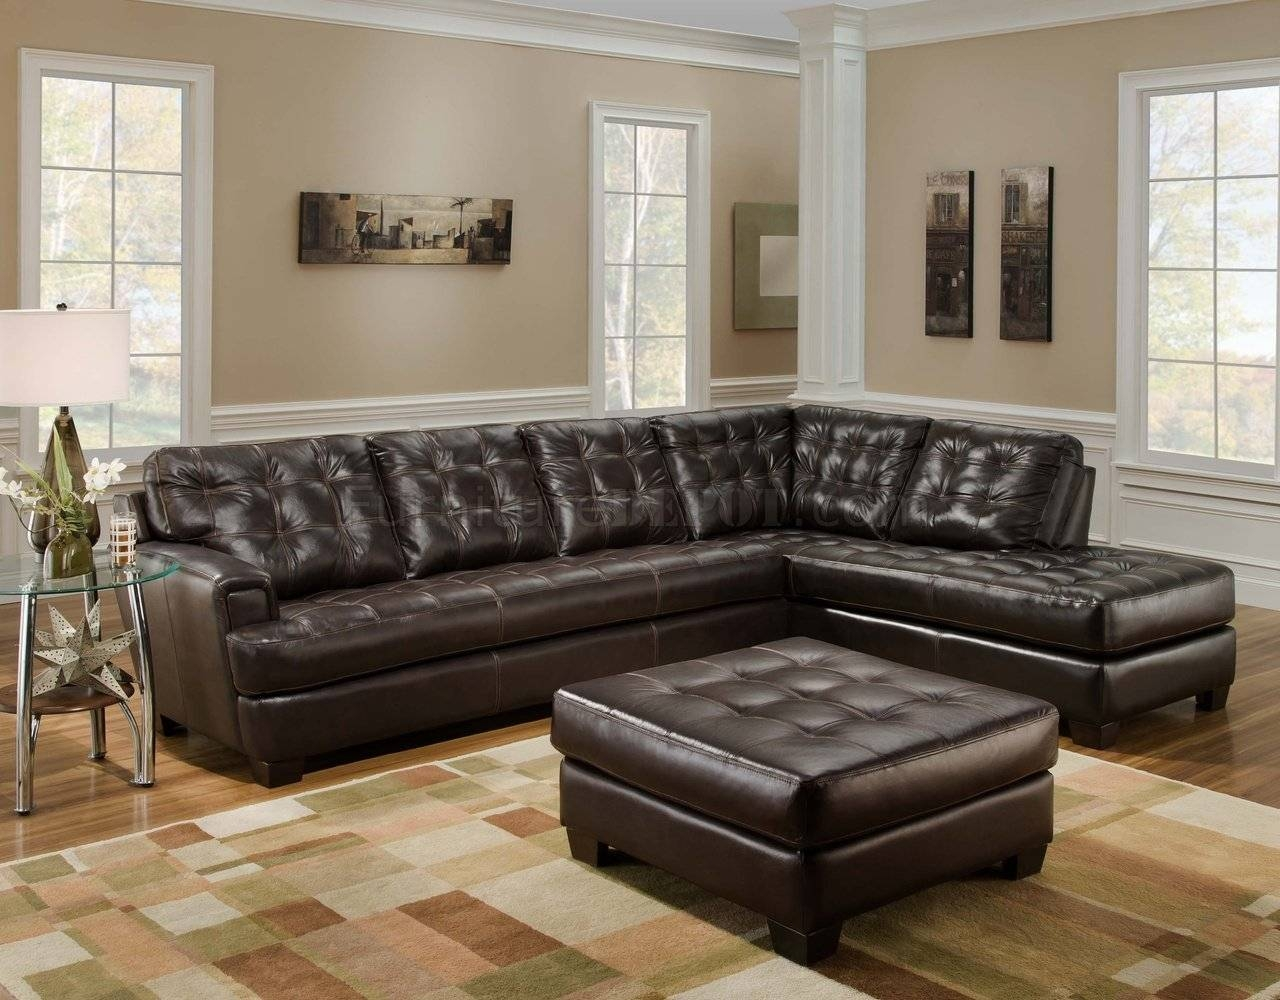 Chicory Brown Tufted Top Grain Leather Modern Sectional Sofa regarding Brown Tufted Sofas (Image 5 of 15)